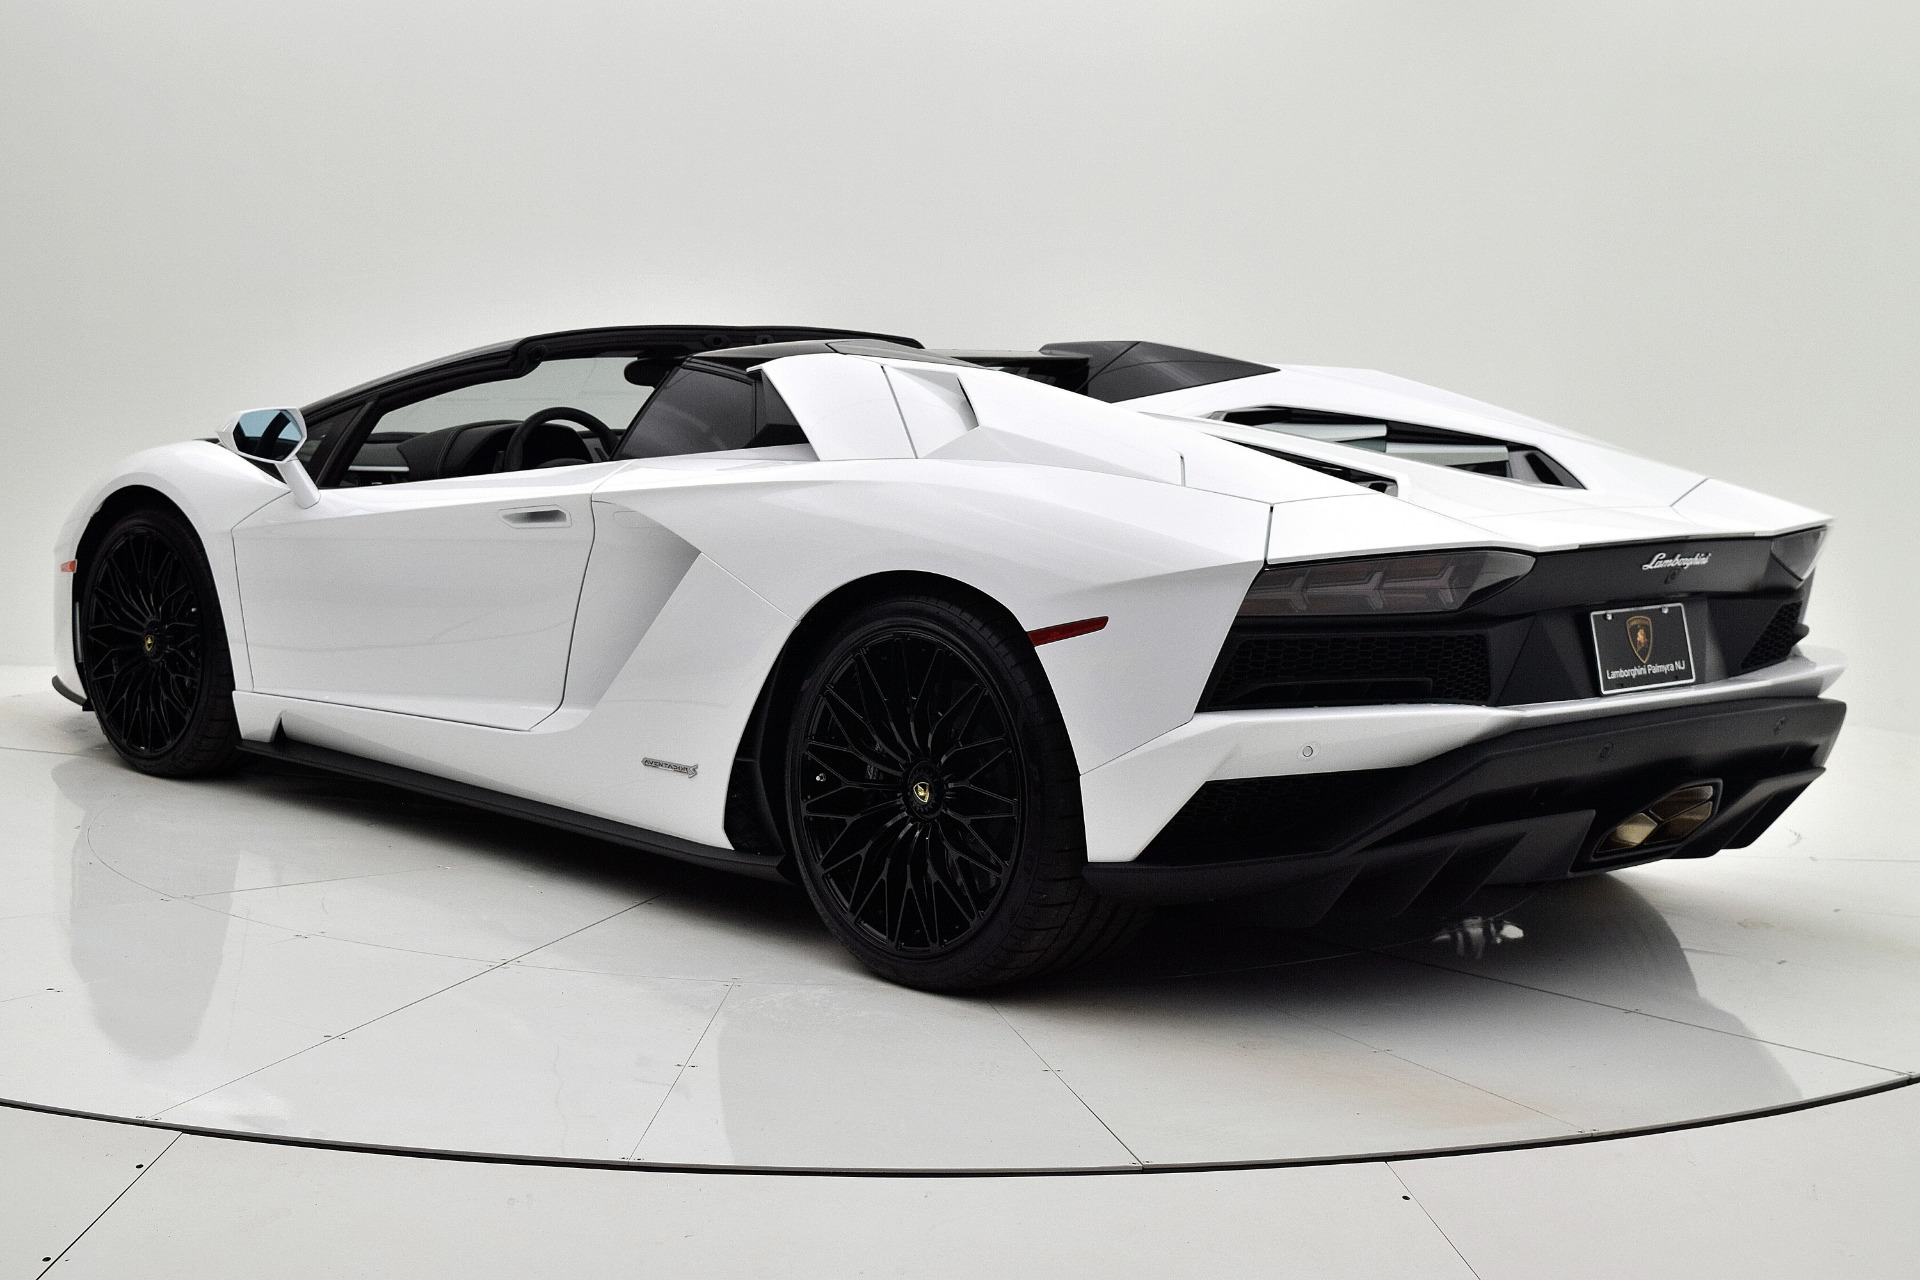 New 2019 Lamborghini Aventador S Roadster For Sale 525 017 F C Kerbeck Aston Martin Stock 19l100